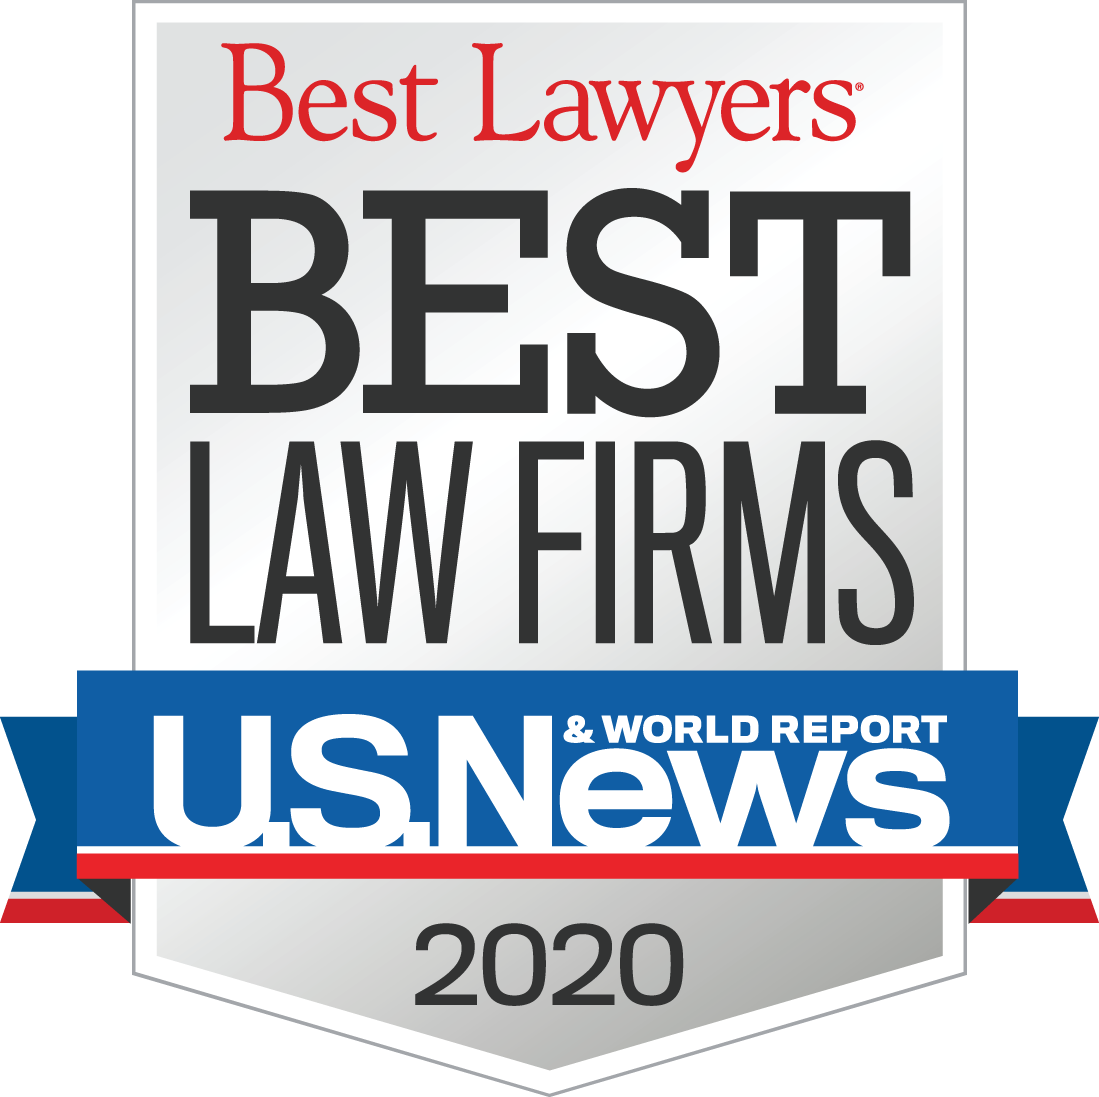 2020 best lawyers and best law firms by U.S. News and World Report badge.